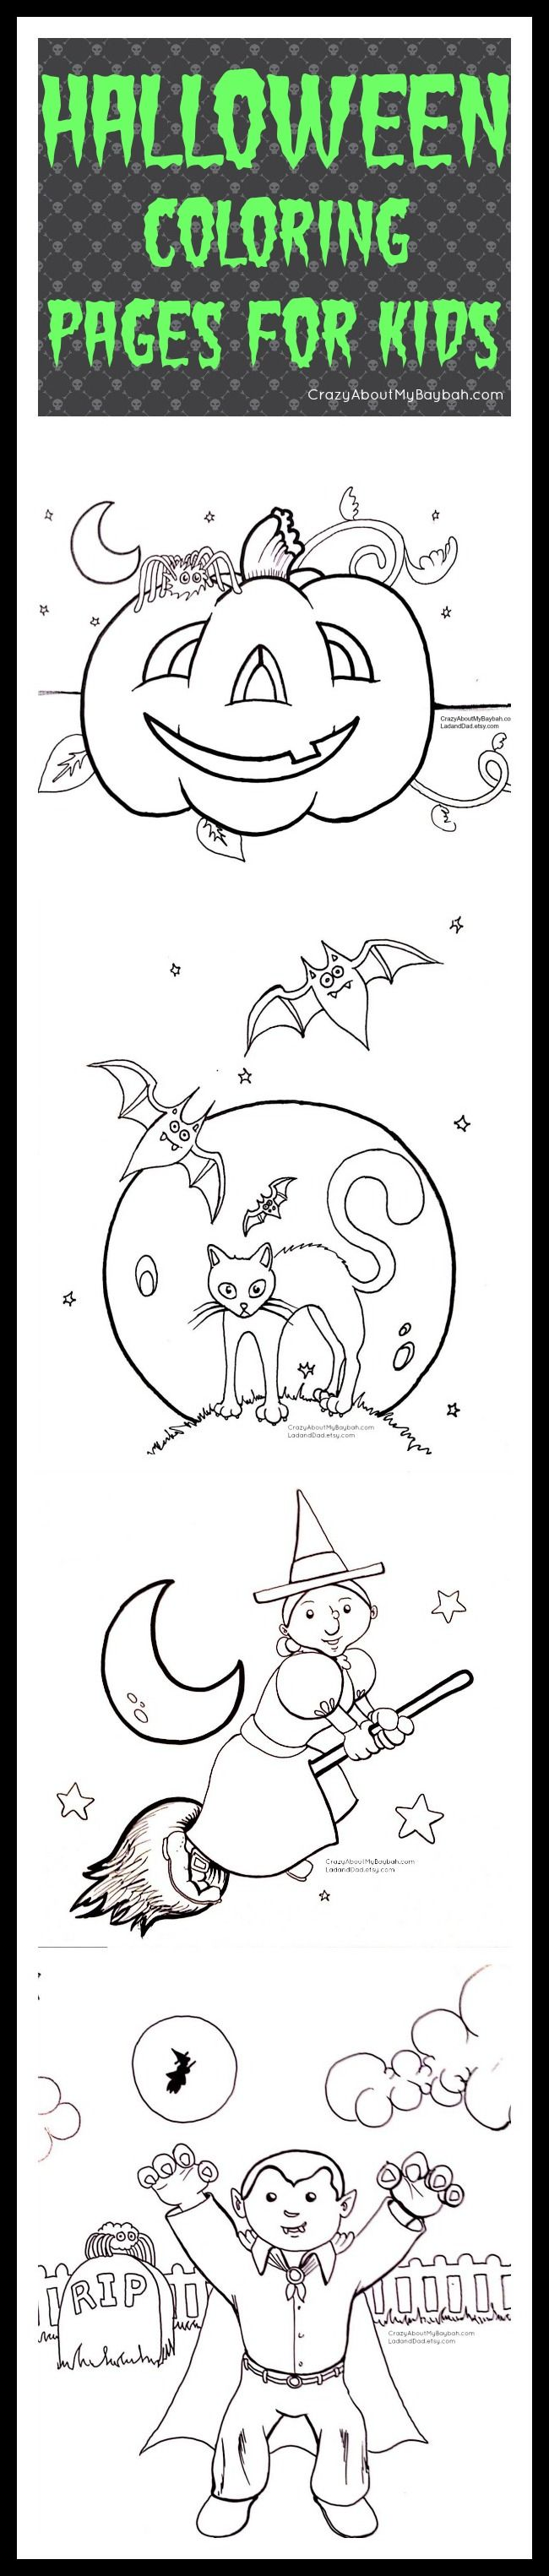 Free Printable Halloween Coloring Pages for Kids #Printables